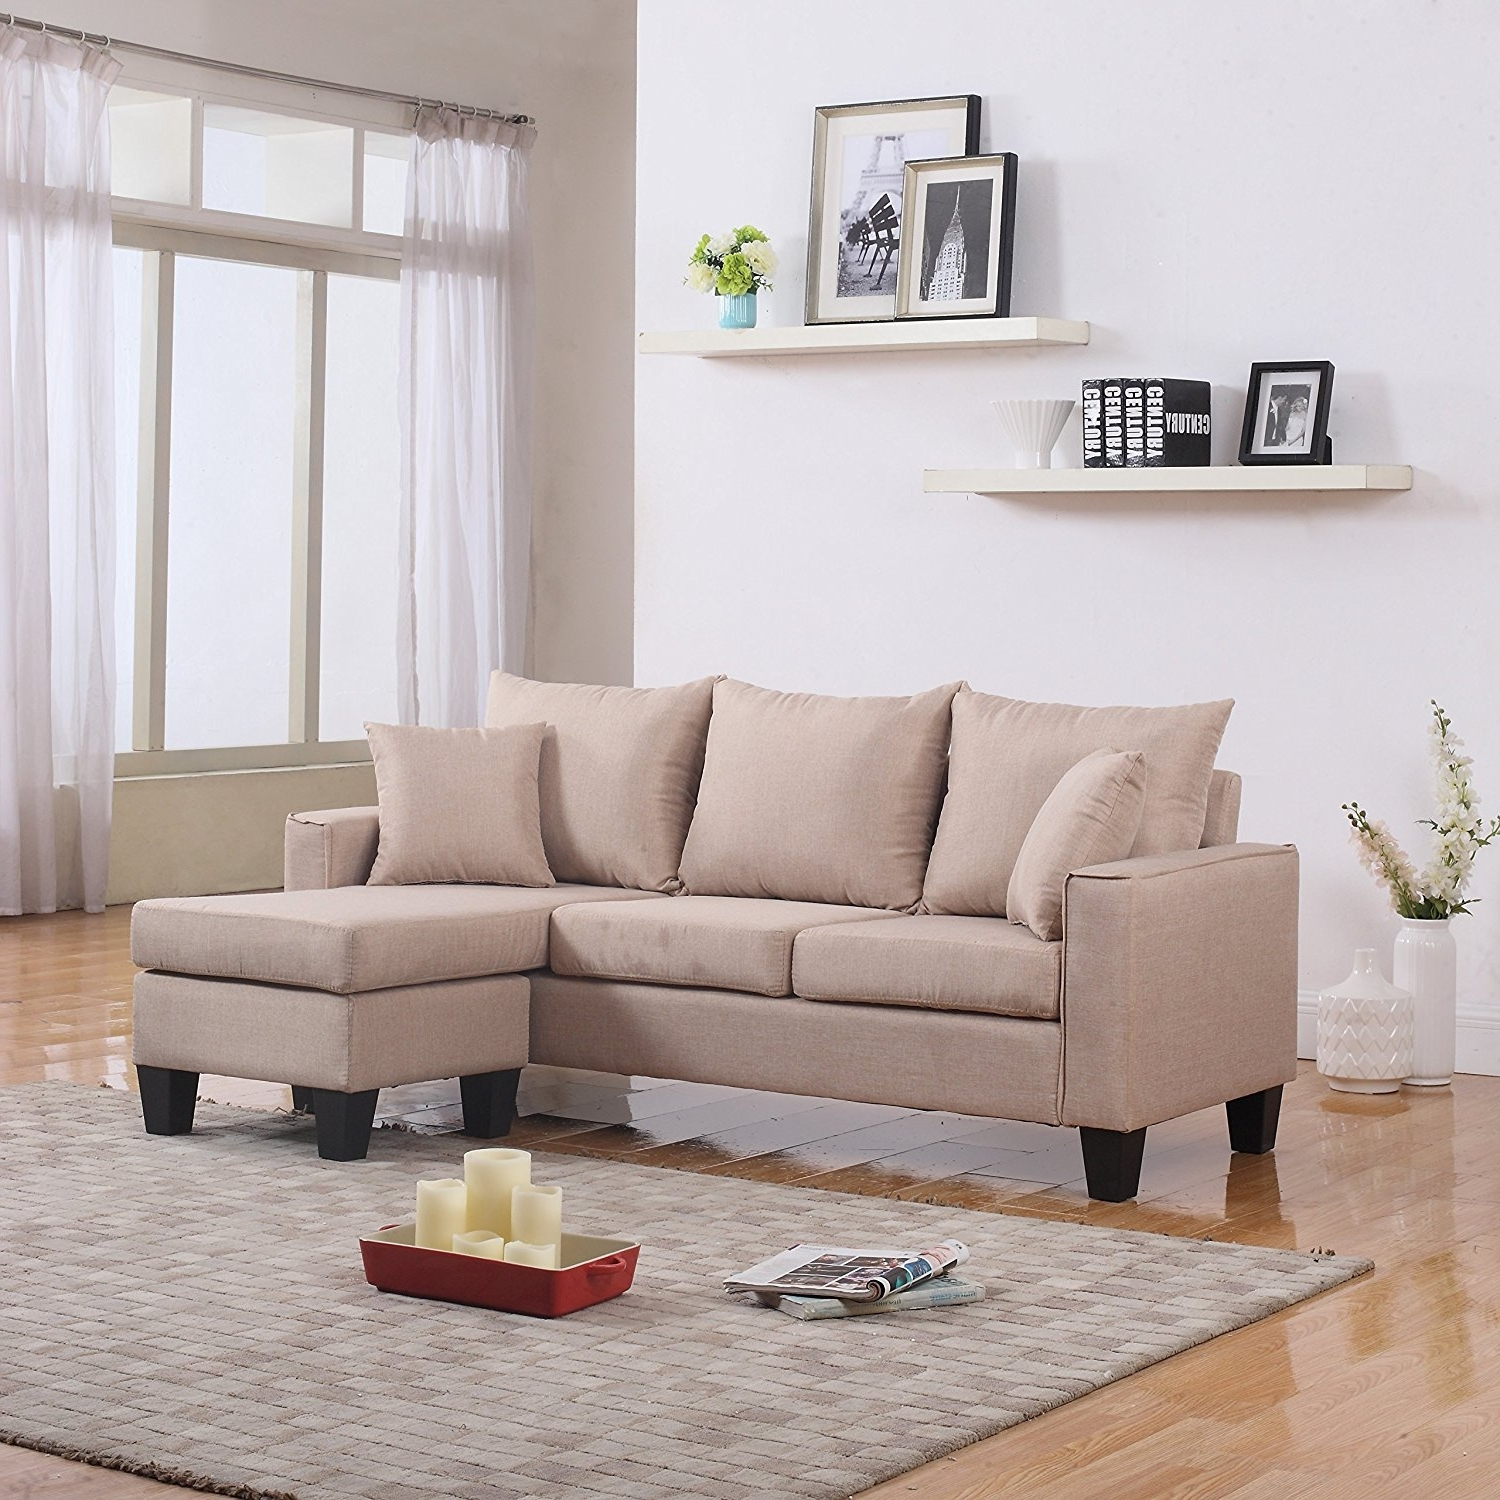 Famous Ethan Allen Furniture Small Sectional Sofas For Small Spaces Regarding Inexpensive Sectional Sofas For Small Spaces (View 4 of 20)